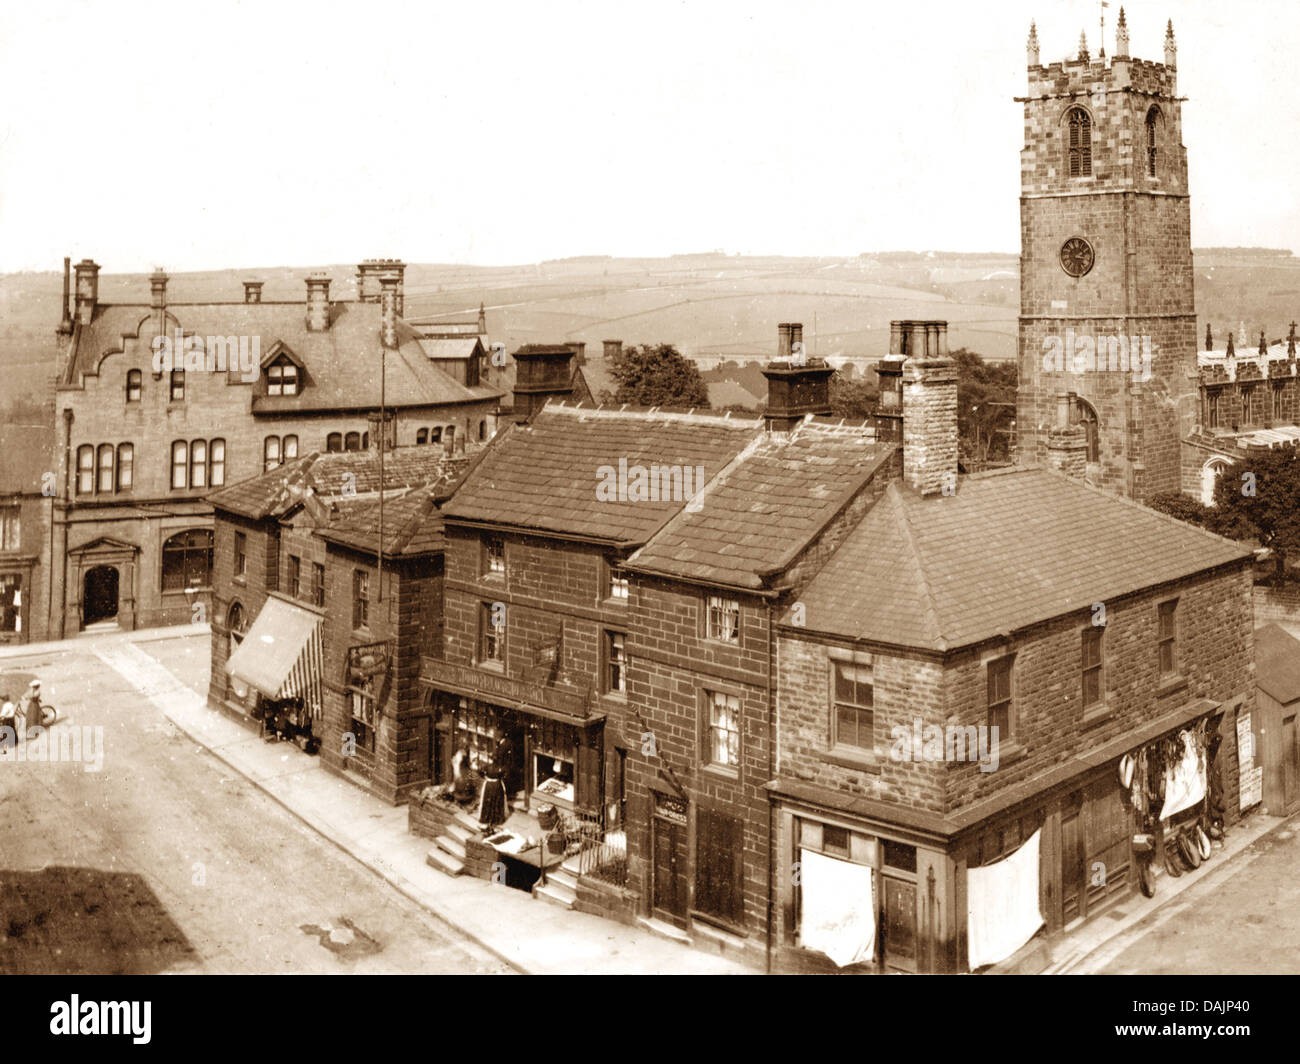 Penistone early 1900s - Stock Image